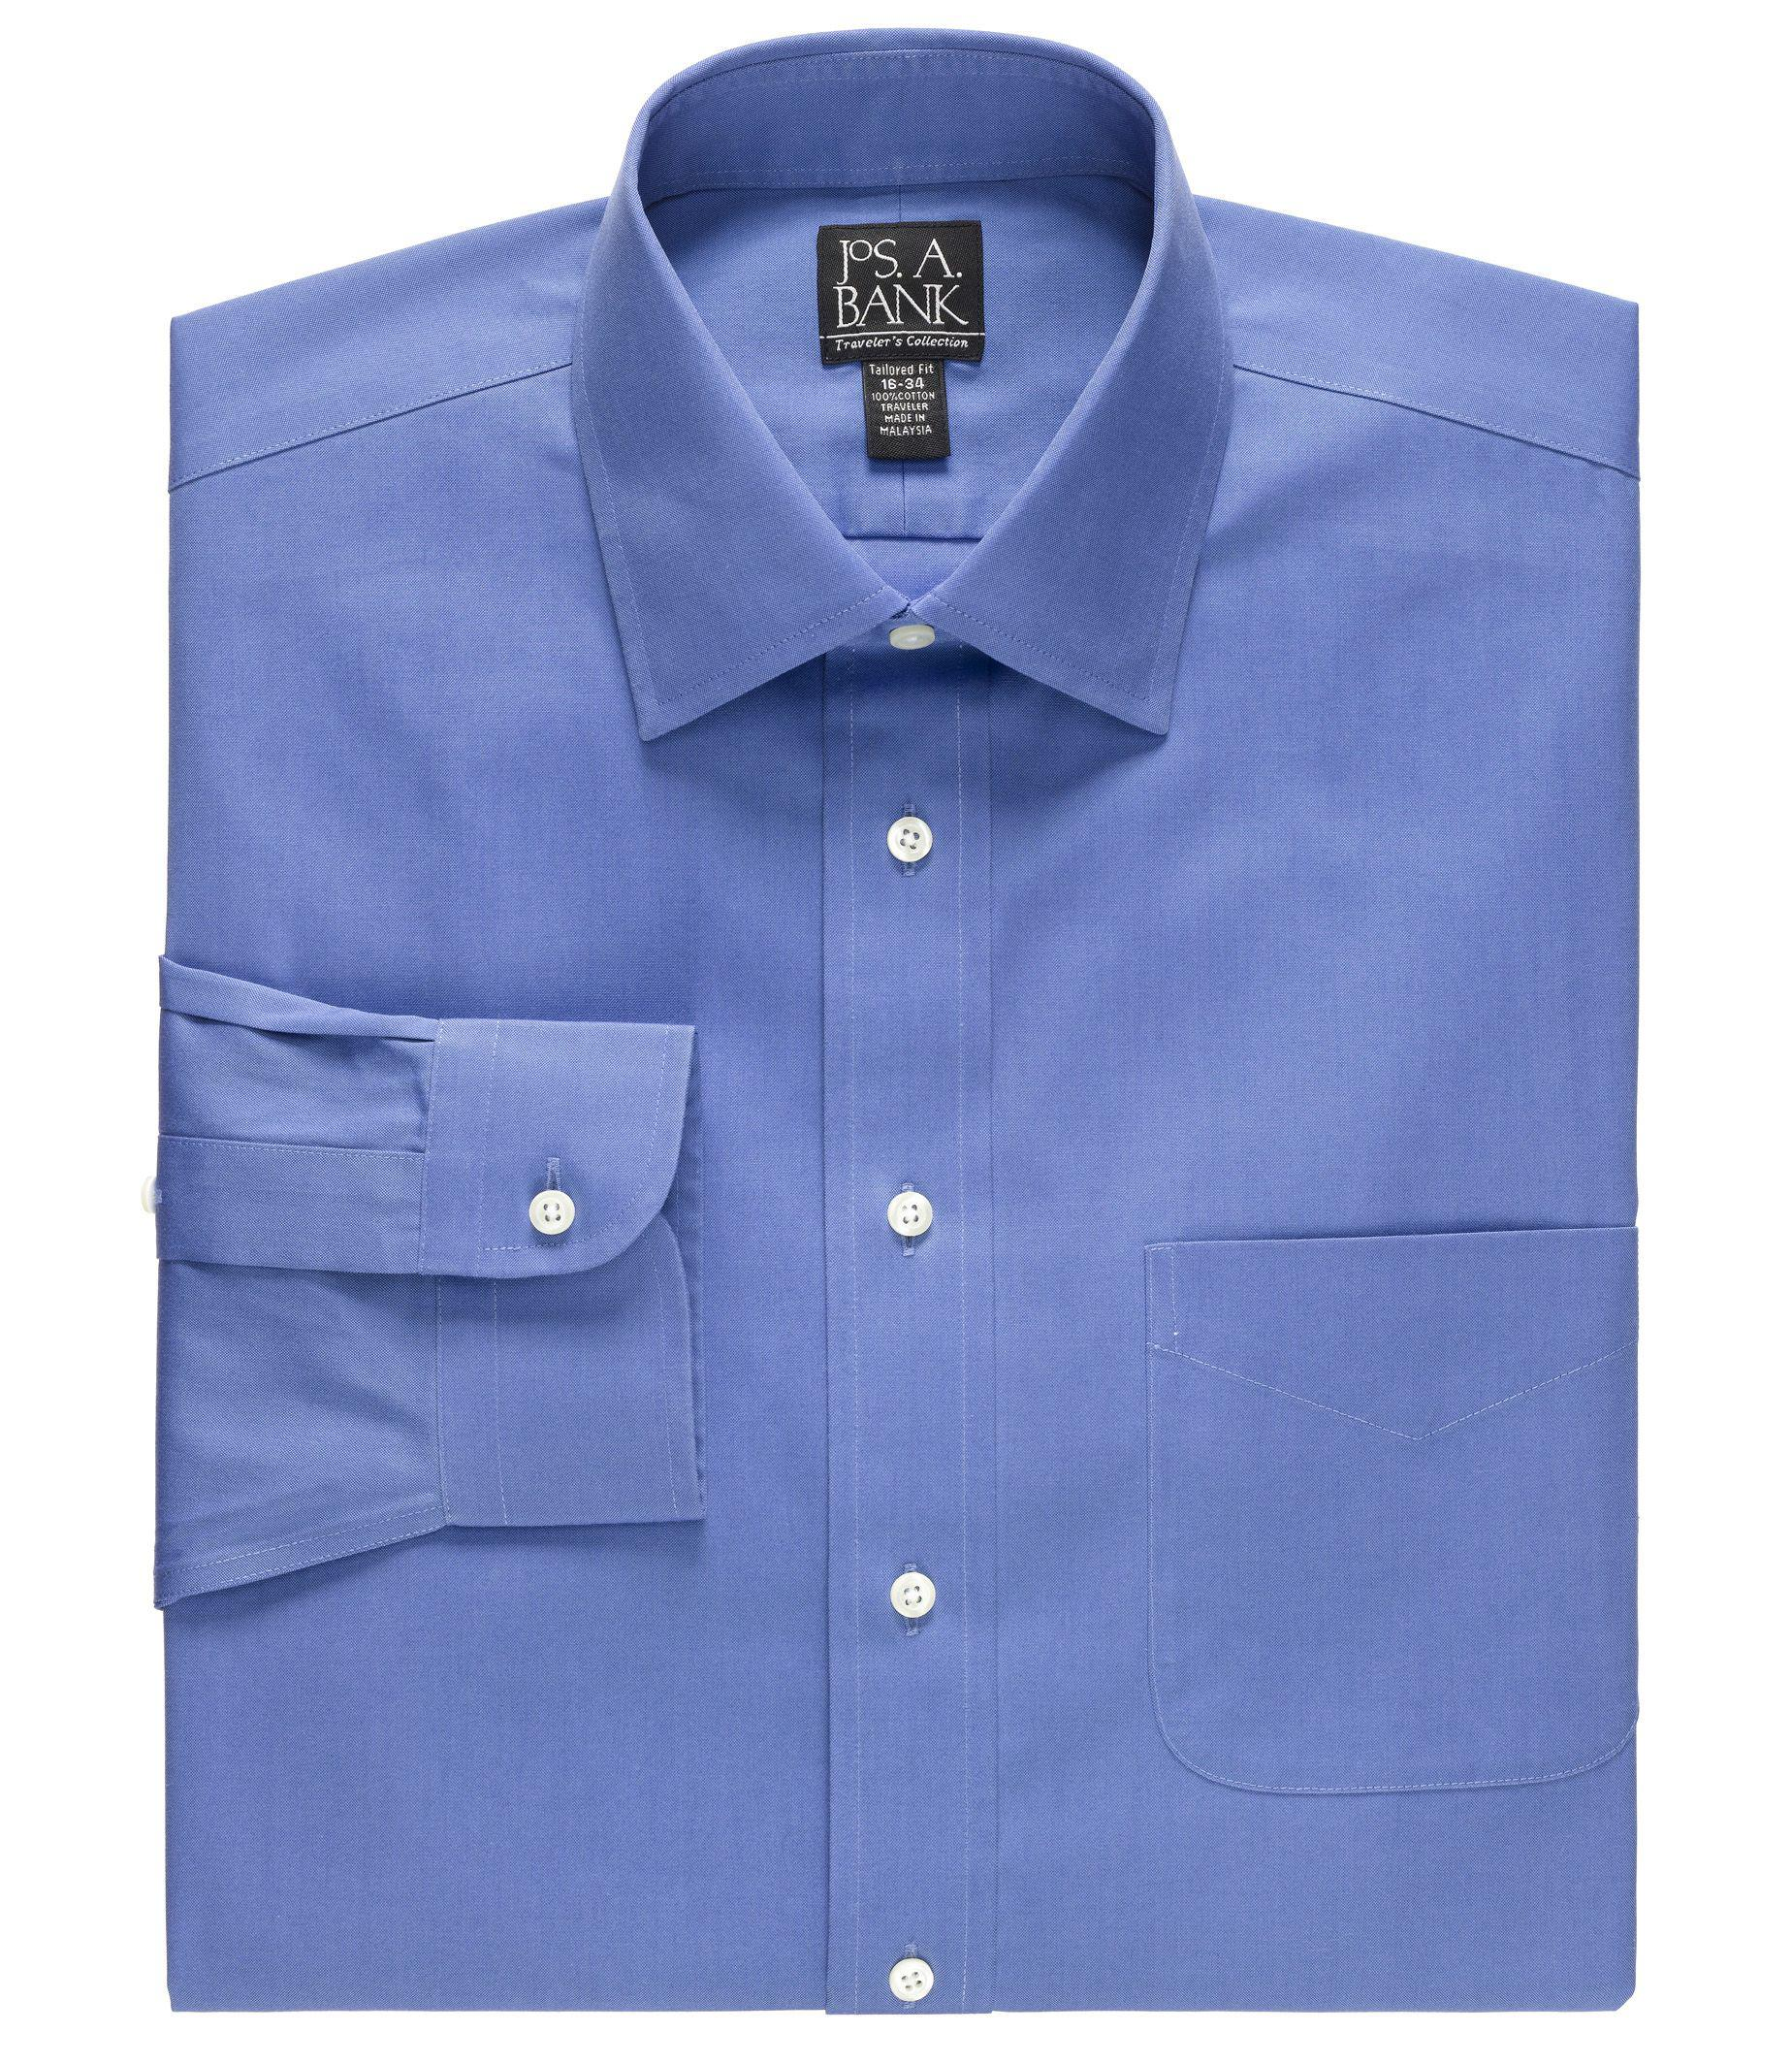 Lyst jos a bank traveller collection slim fit spread for Spread collar dress shirt without tie